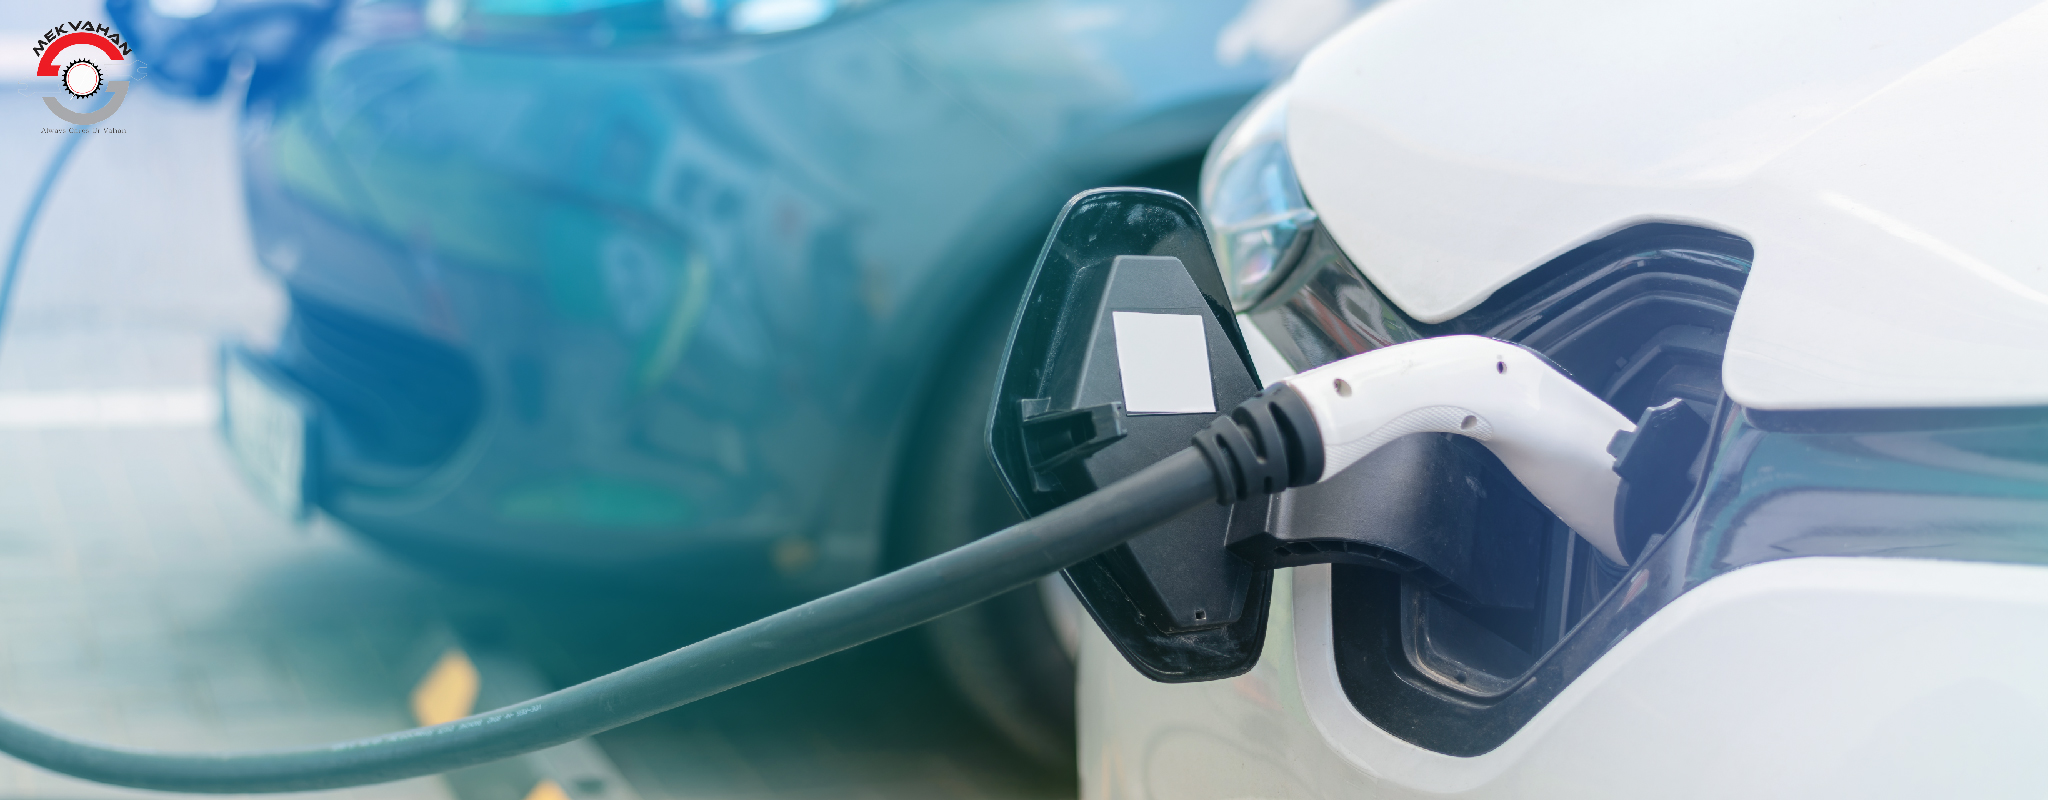 Most common problems with Electric vehicles